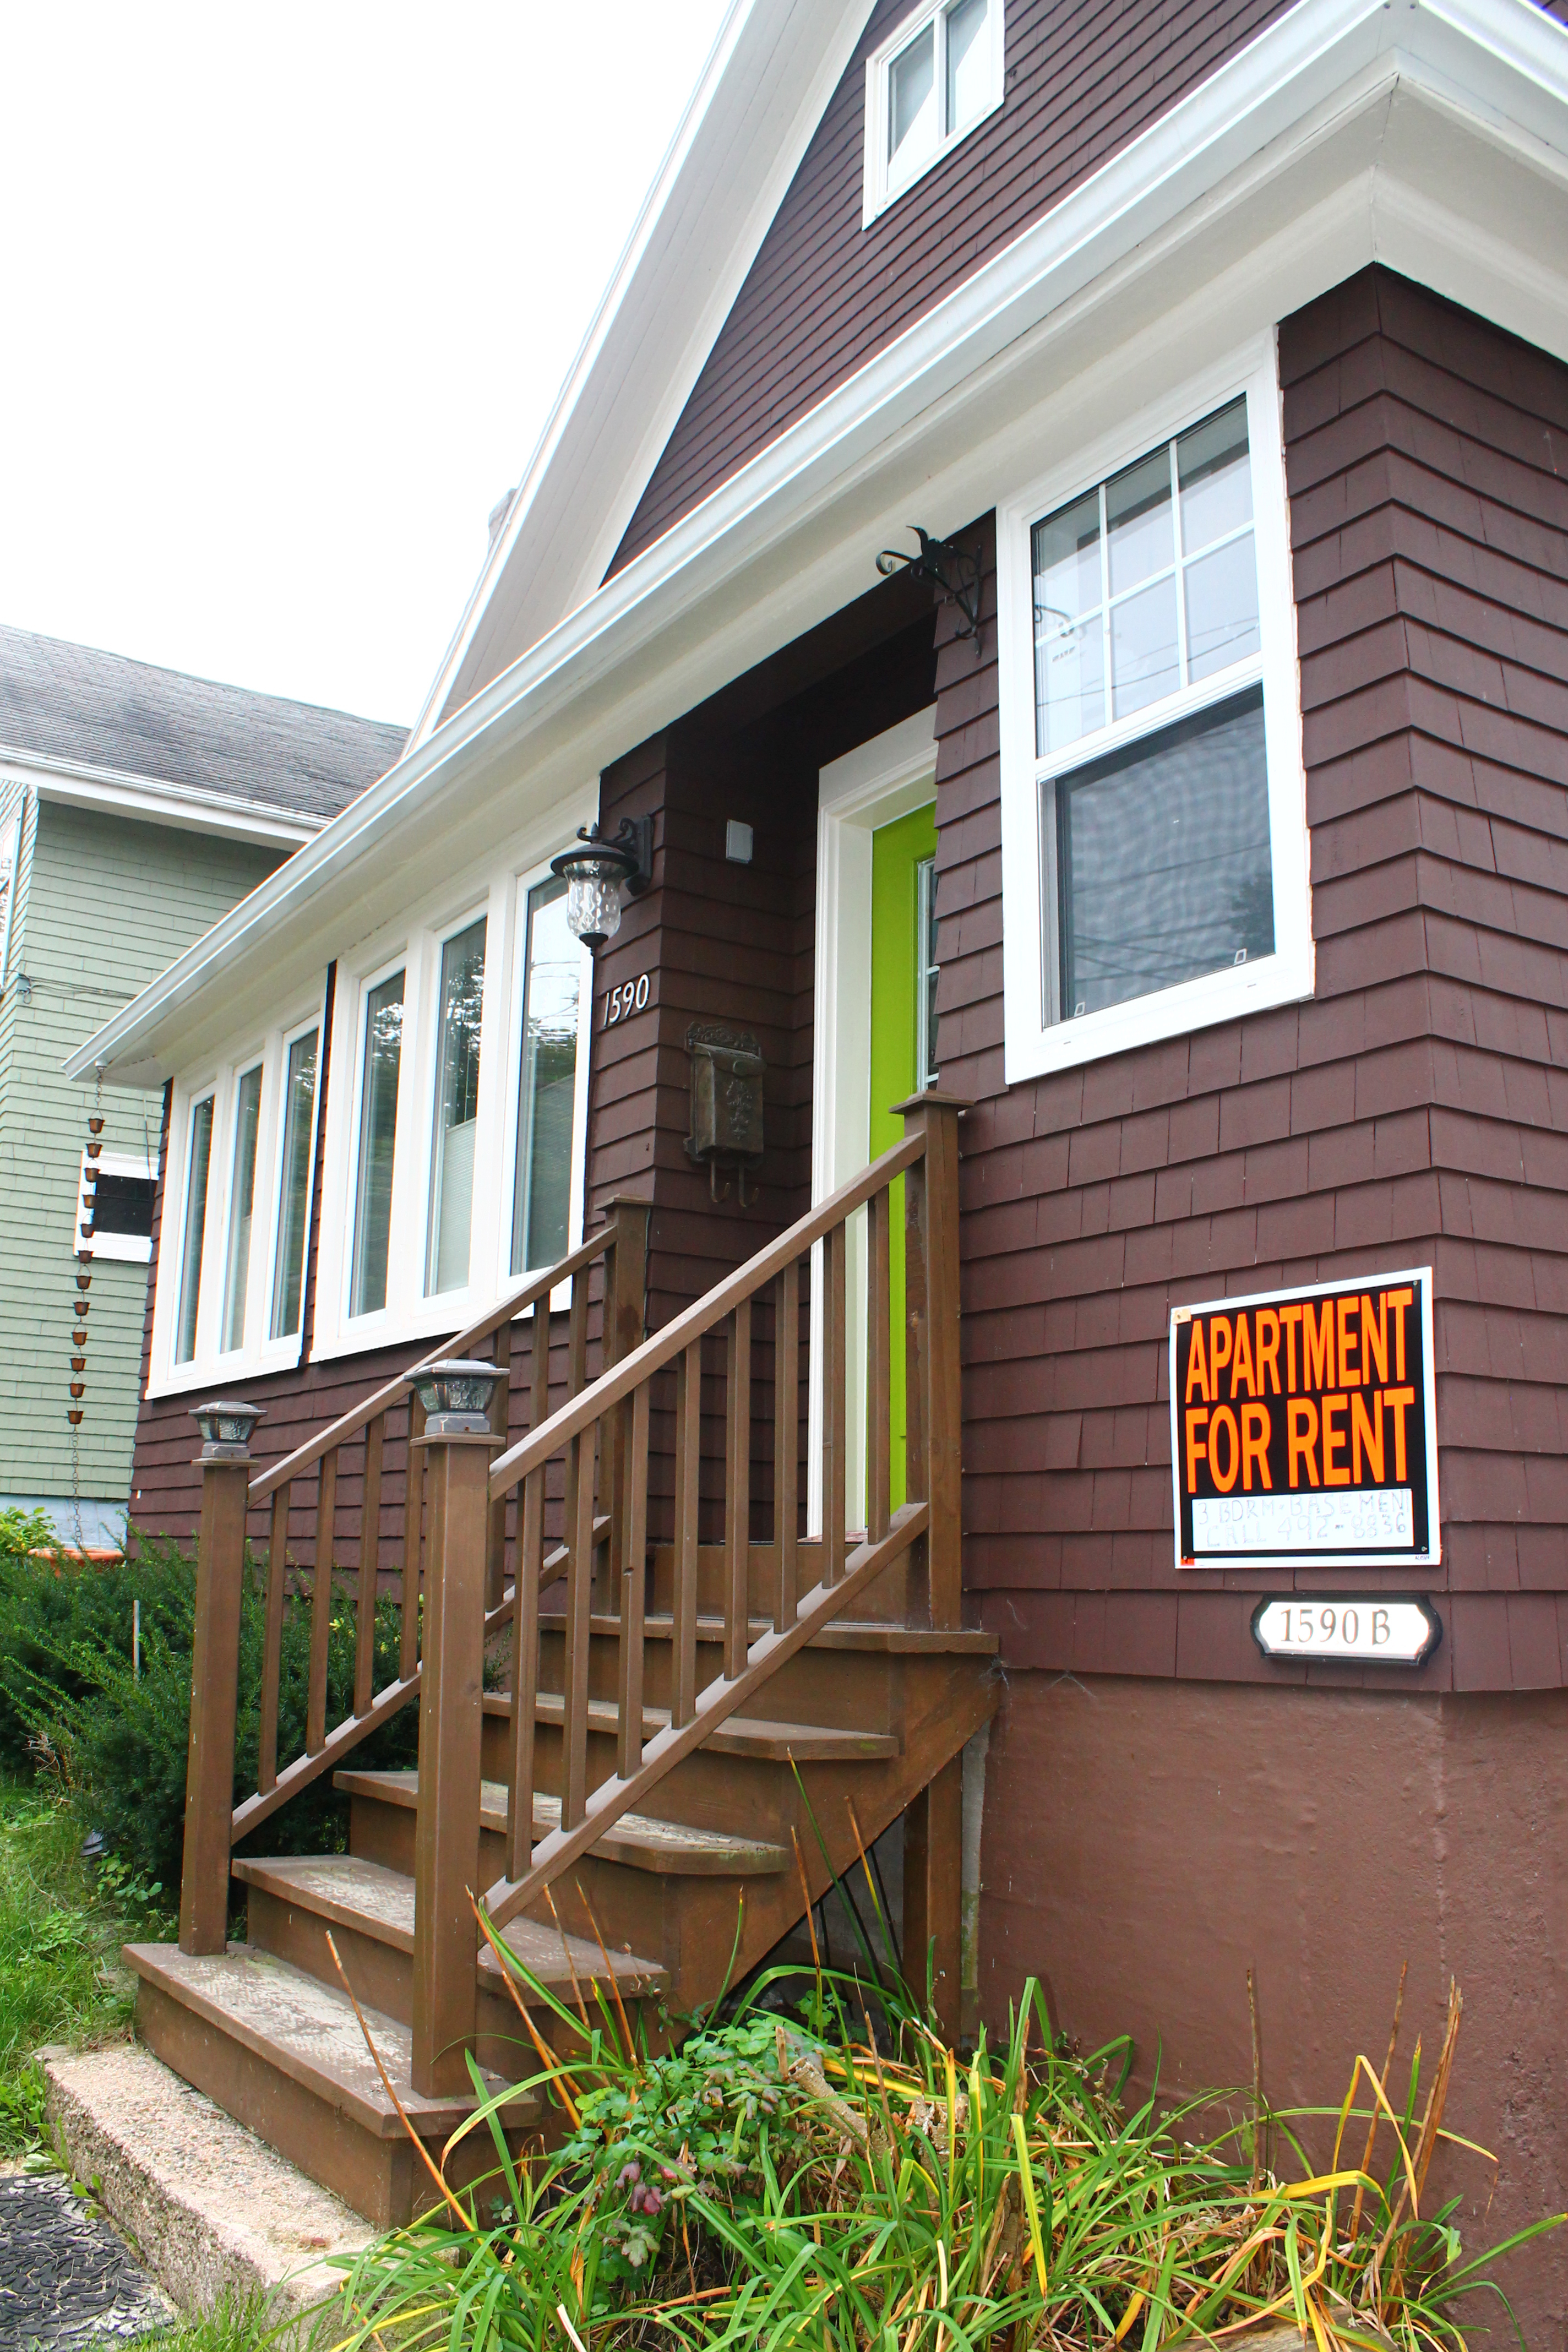 Check out the Access Nova Scotia website for info on tenant rights and responsibilities (Photo by Amanda Rolfe)